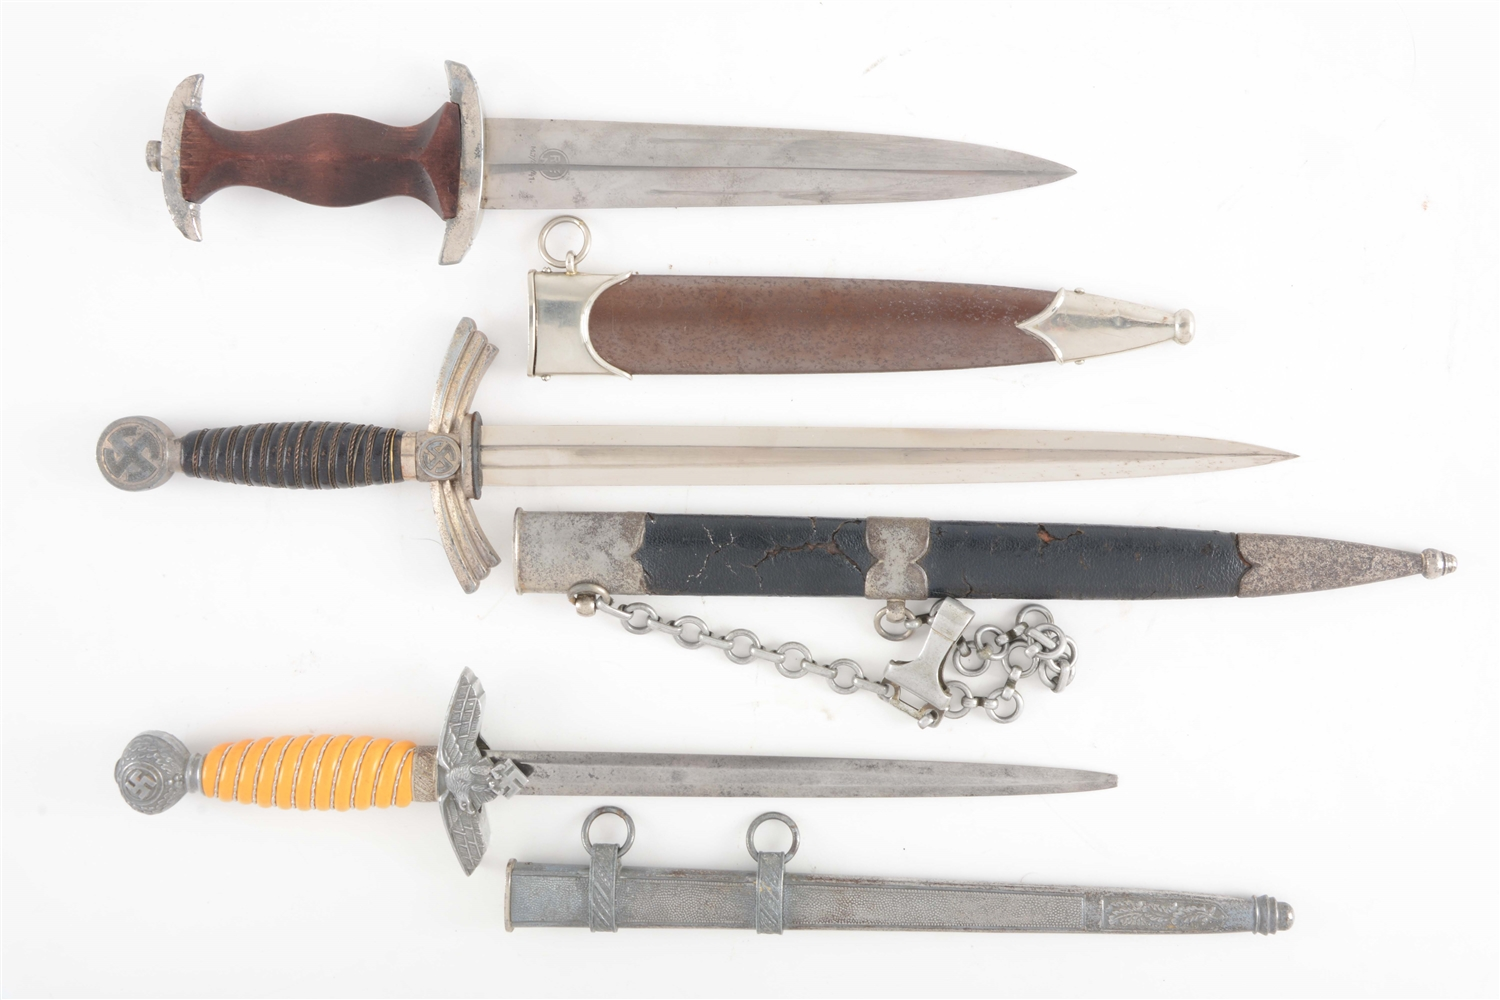 LOT OF 3: THIRD REICH SA, LUFTWAFFE FIRST MODEL, AND LUFTWAFFE DAGGERS.